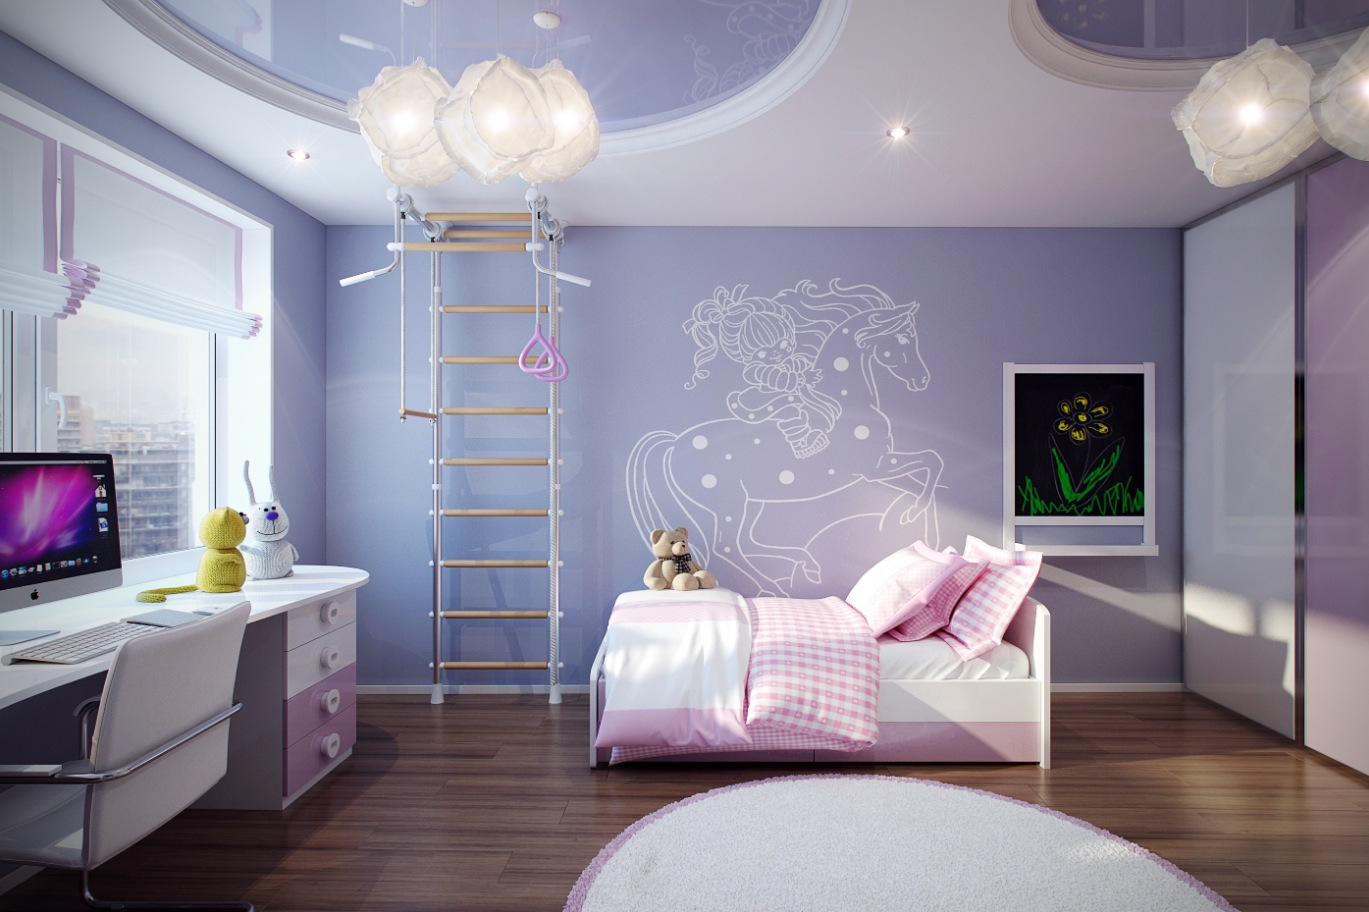 Casting Color Over Kids Rooms on Room For Girls  id=91258